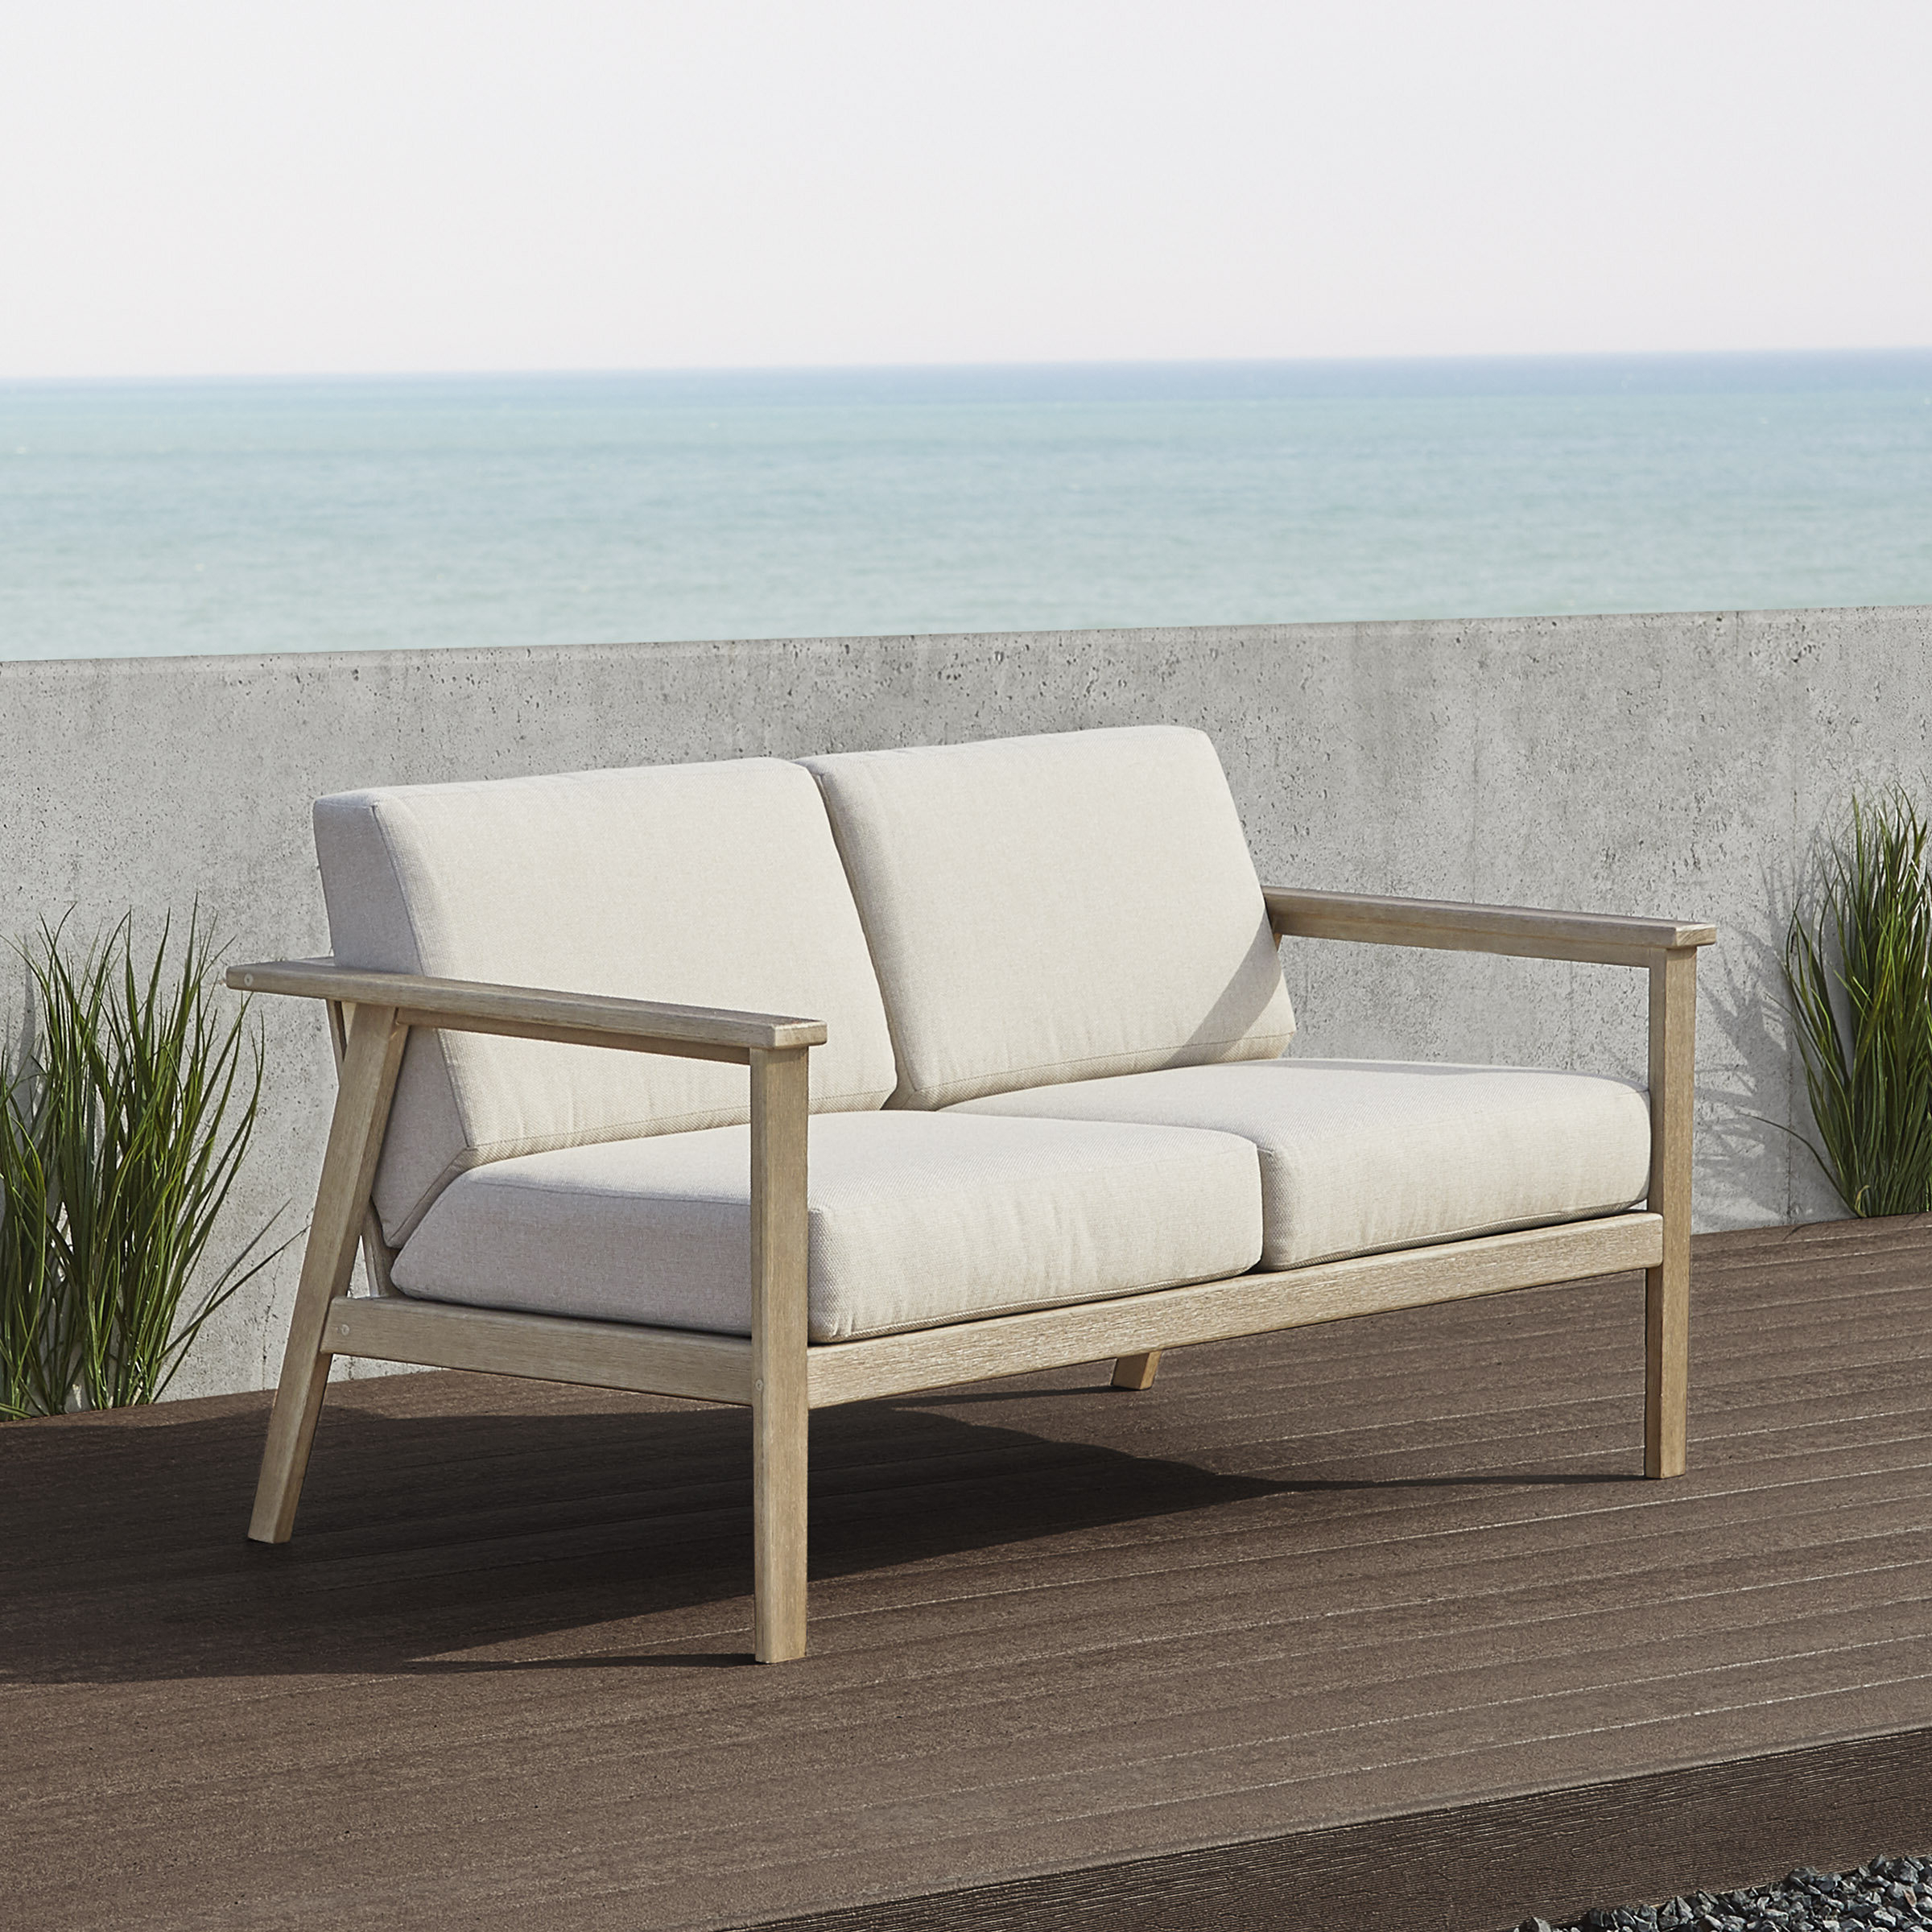 Most Popular Speer Loveseat With Cushions In Zeman Ultra Comfortable Upholstered Anodized Aluminum Loveseats With Cushion (View 14 of 25)